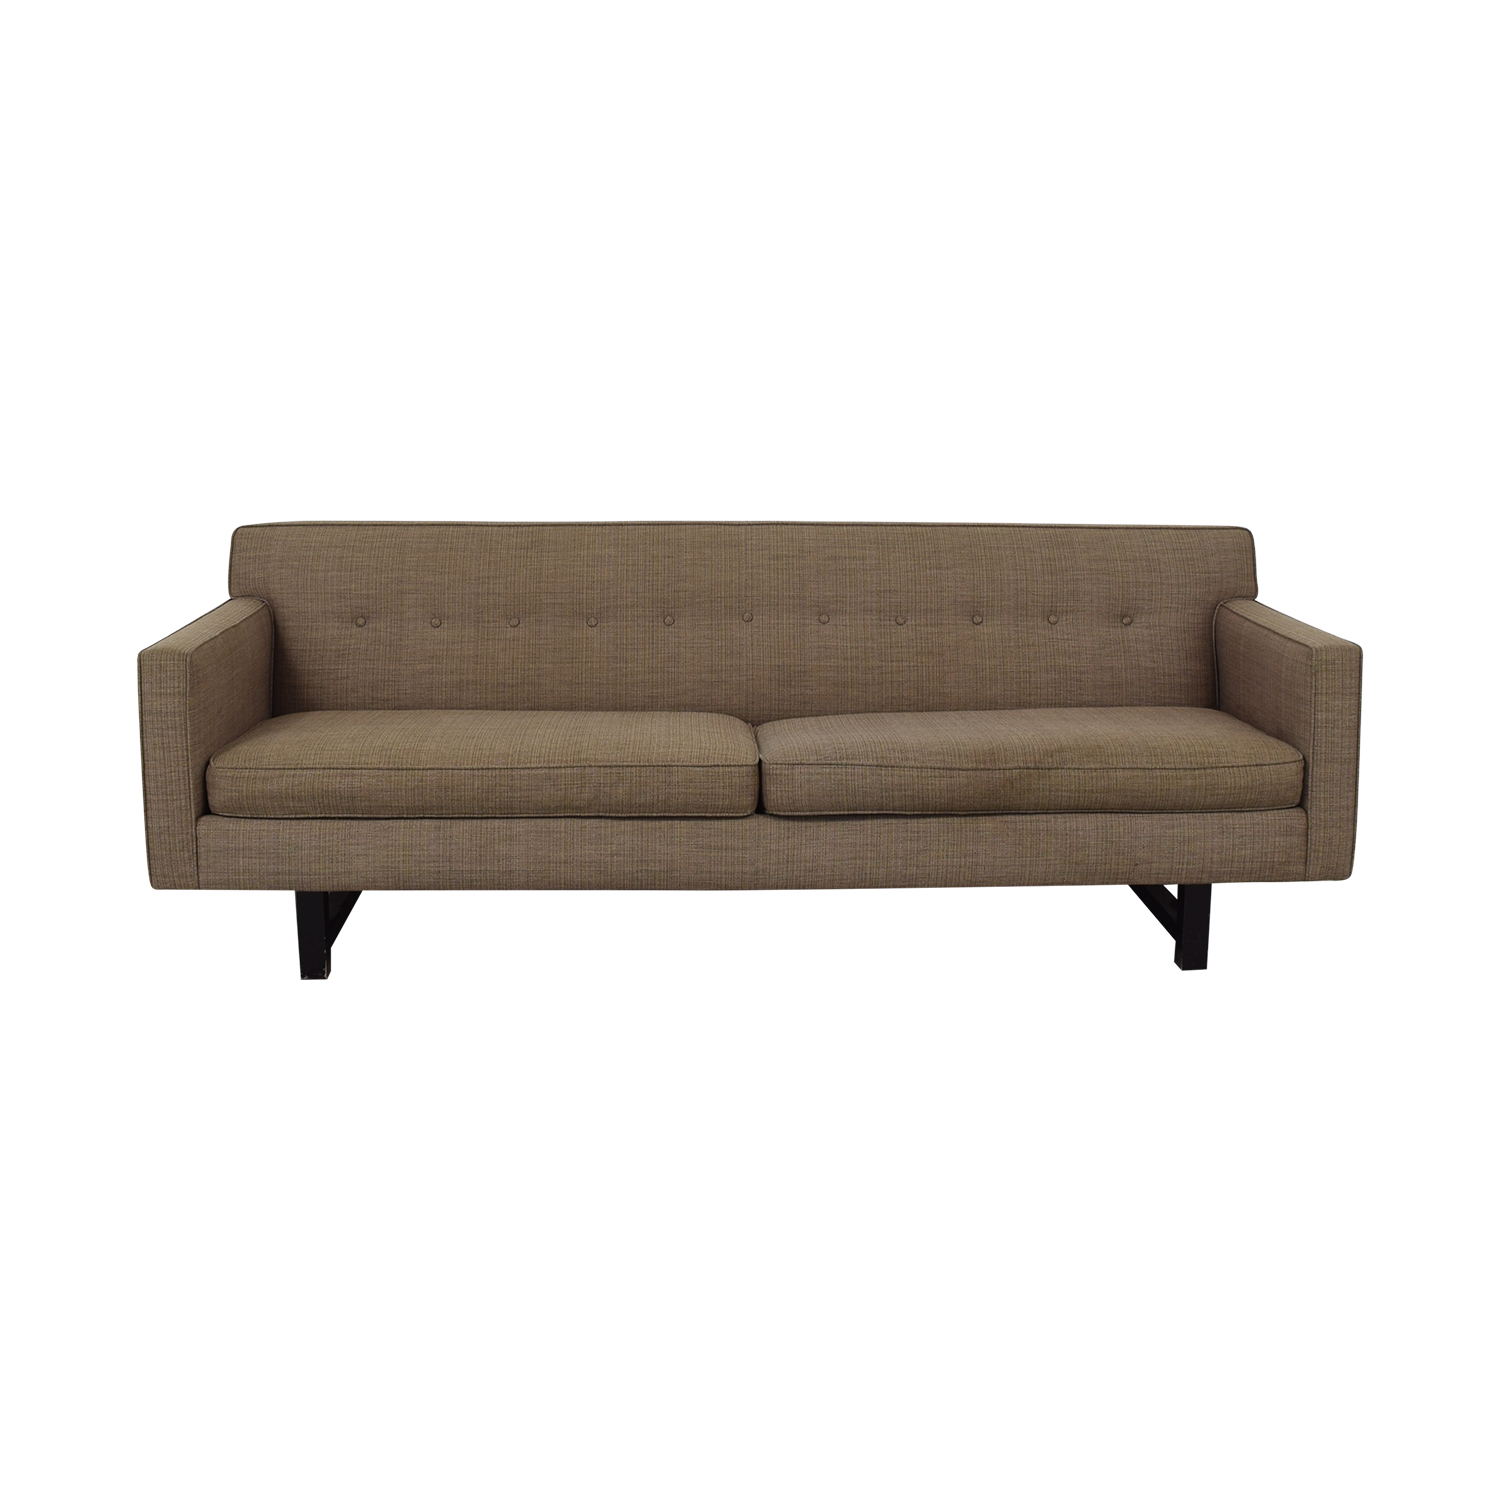 buy Room and Board Room & Board Andre Tan Tufted Two-Cushion Sofa online